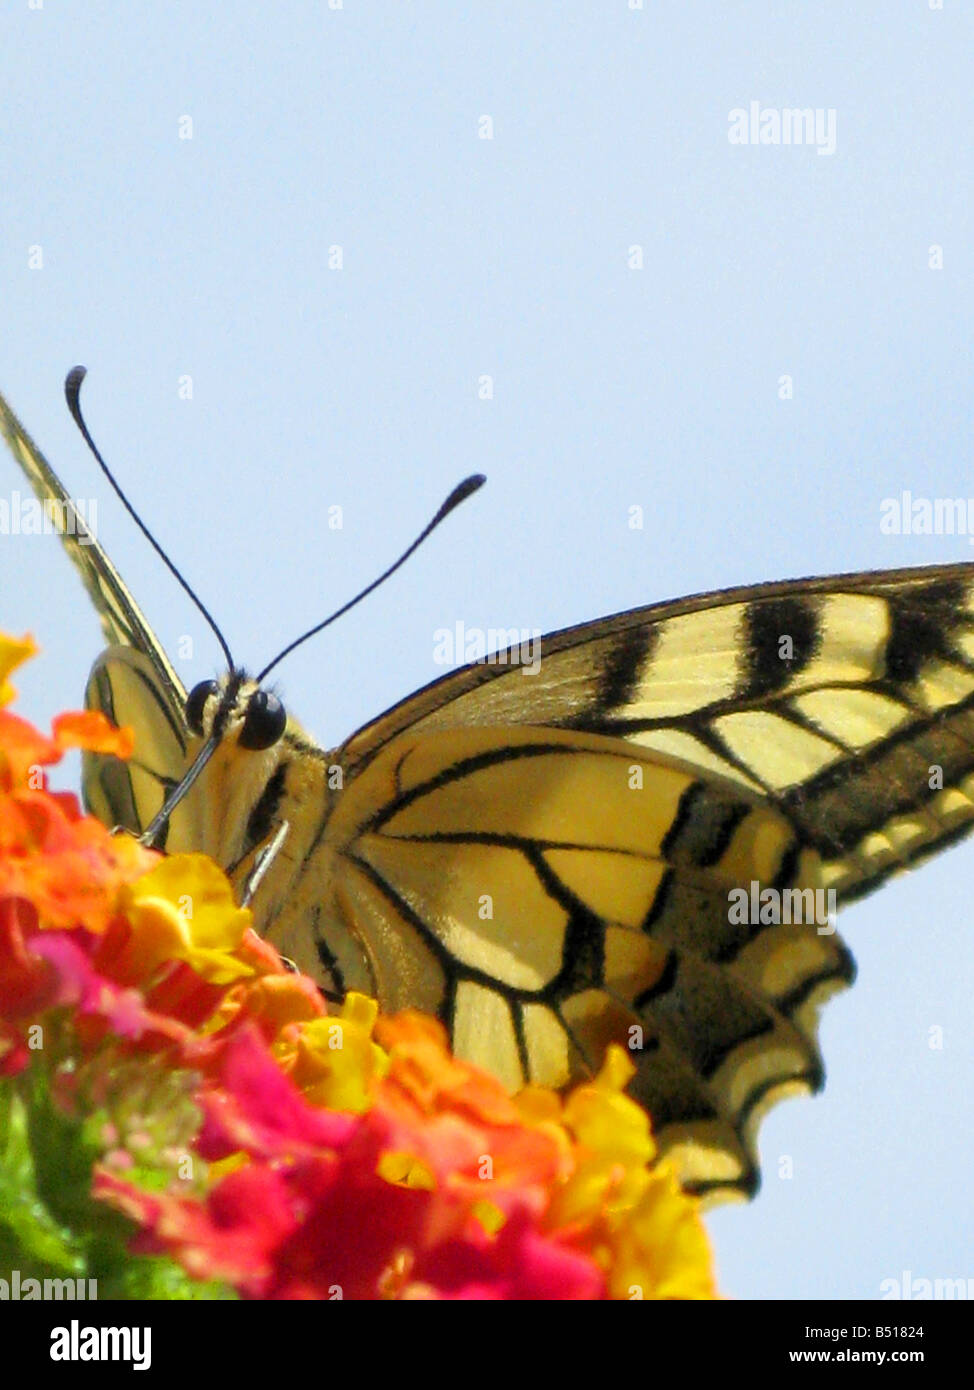 Swallowtail Butterflies Are Large Colorful Butterflies Which Form